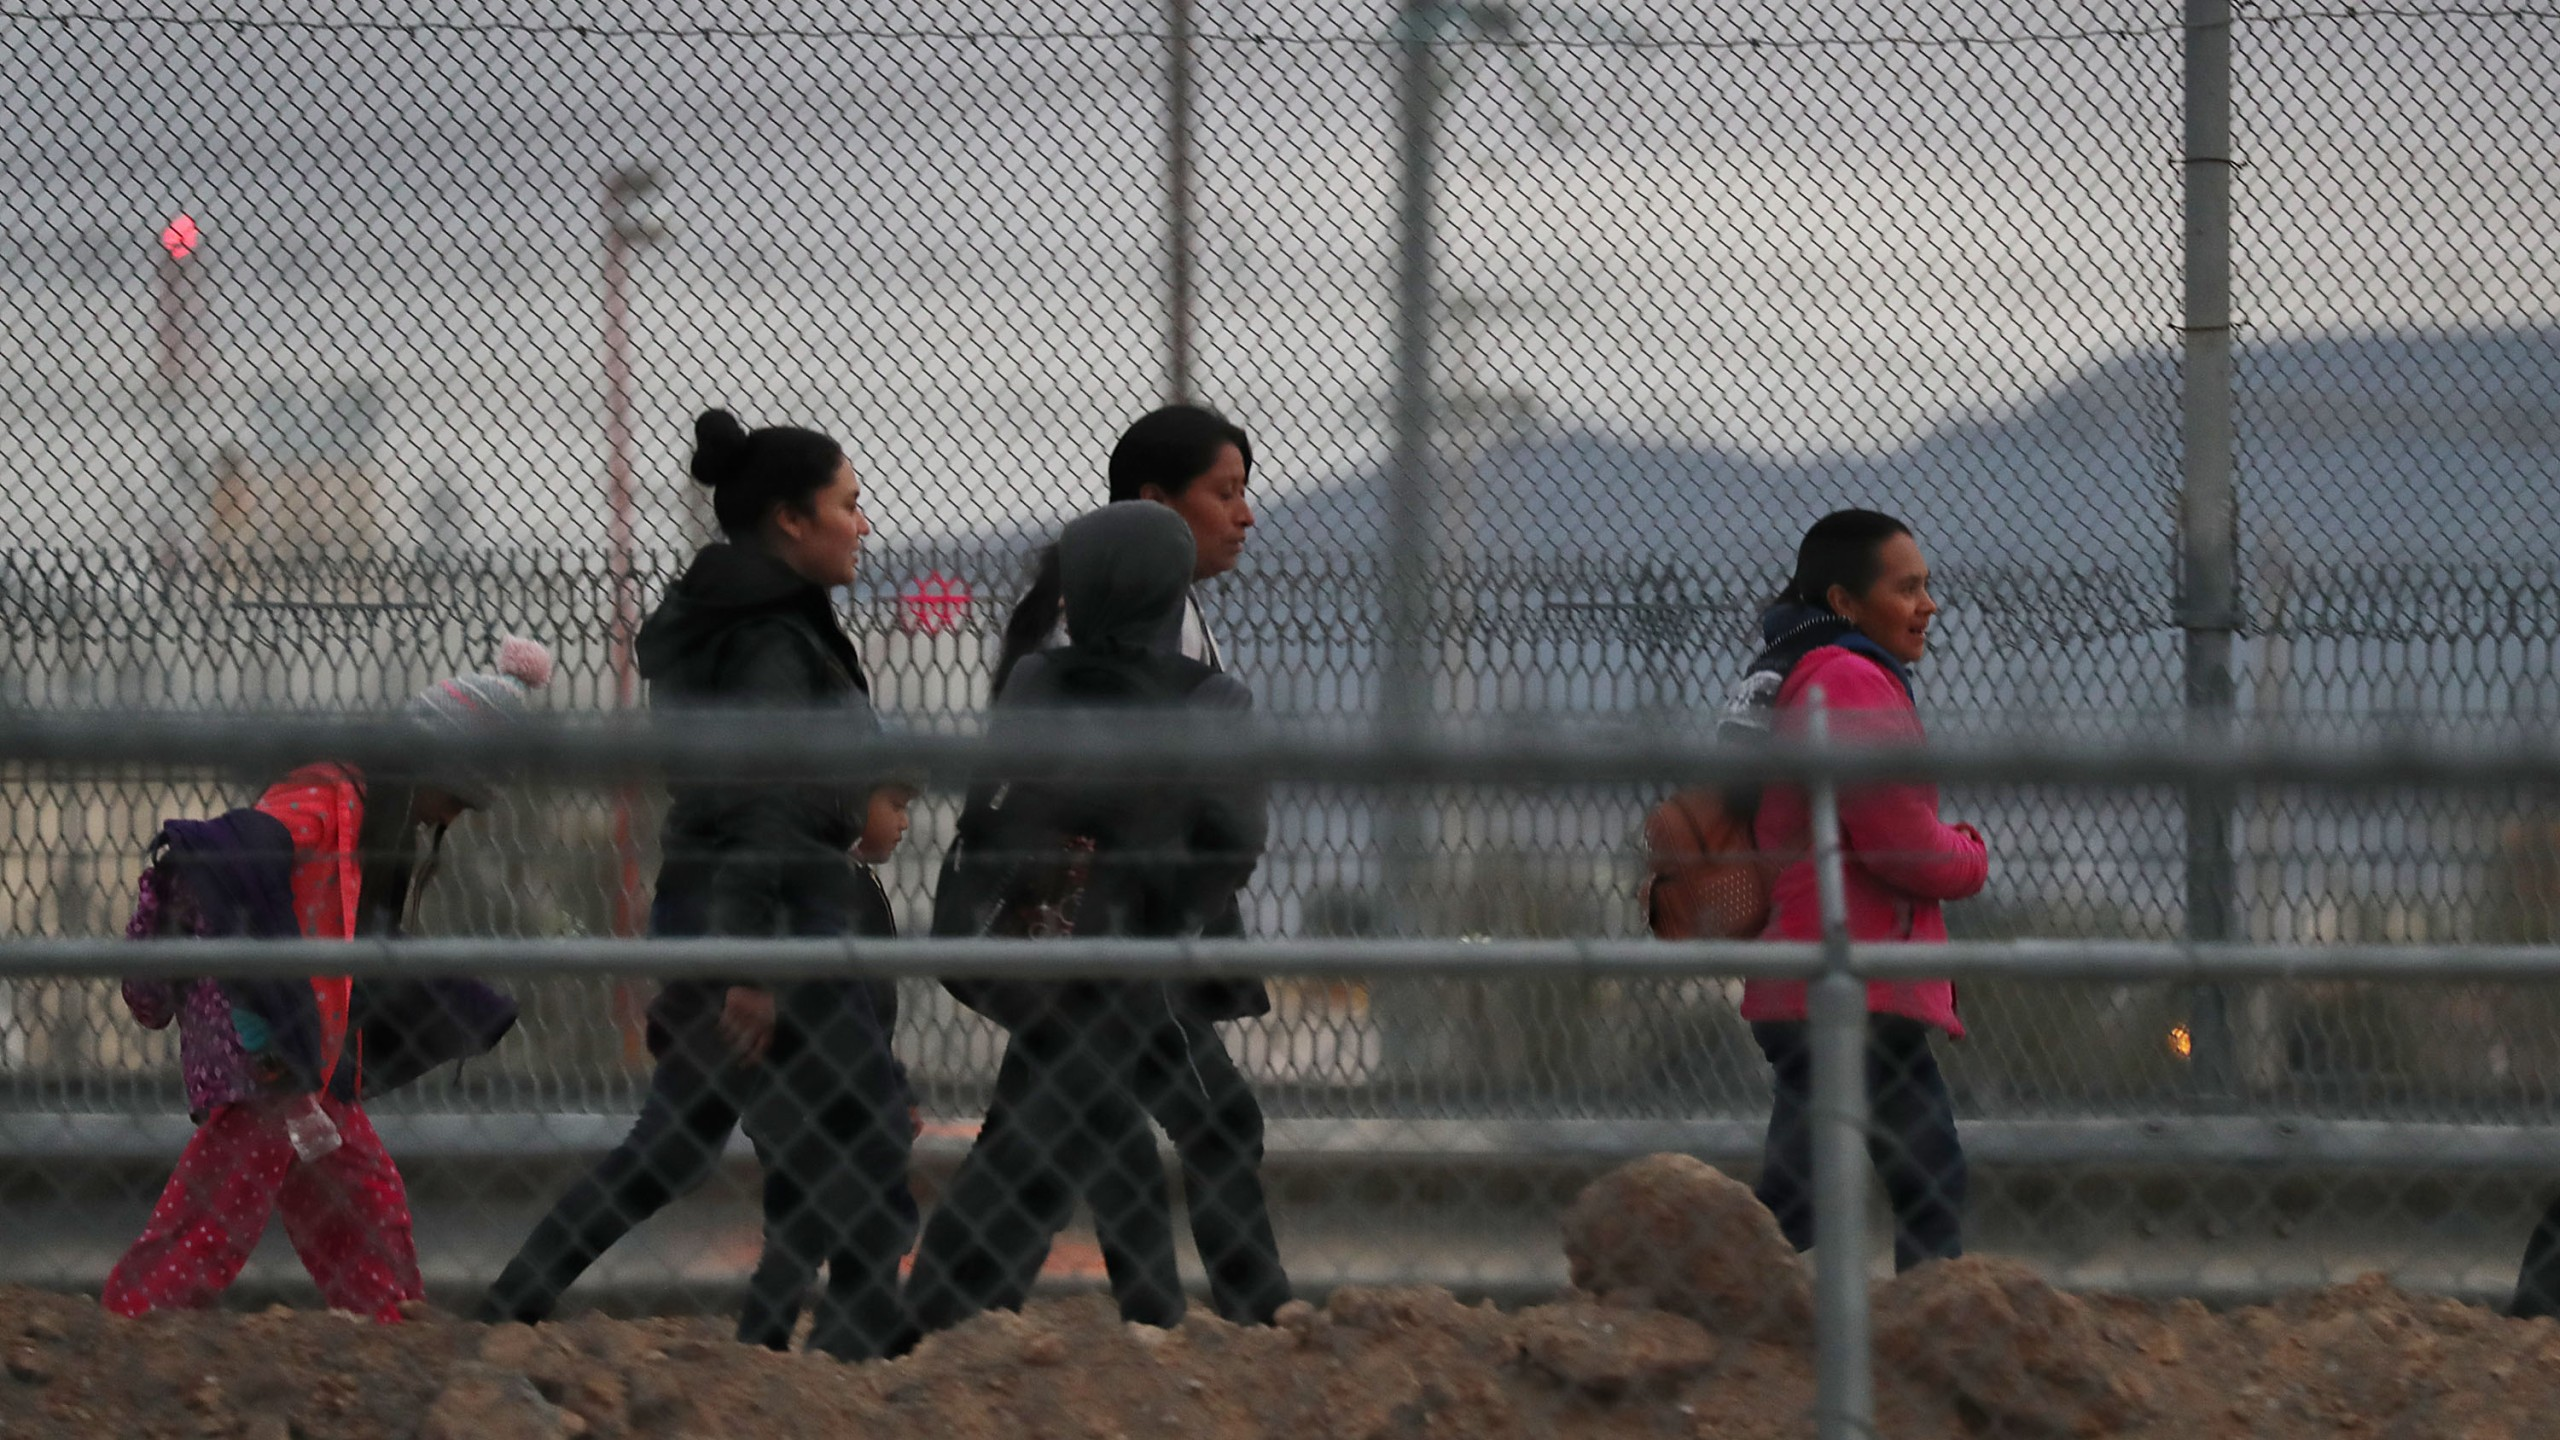 Migrants walk along the U.S.- Mexico border wall as they make their way to U.S. Border Patrol on Feb. 10, 2019 in El Paso, Texas. (Credit: Joe Raedle/Getty Images)